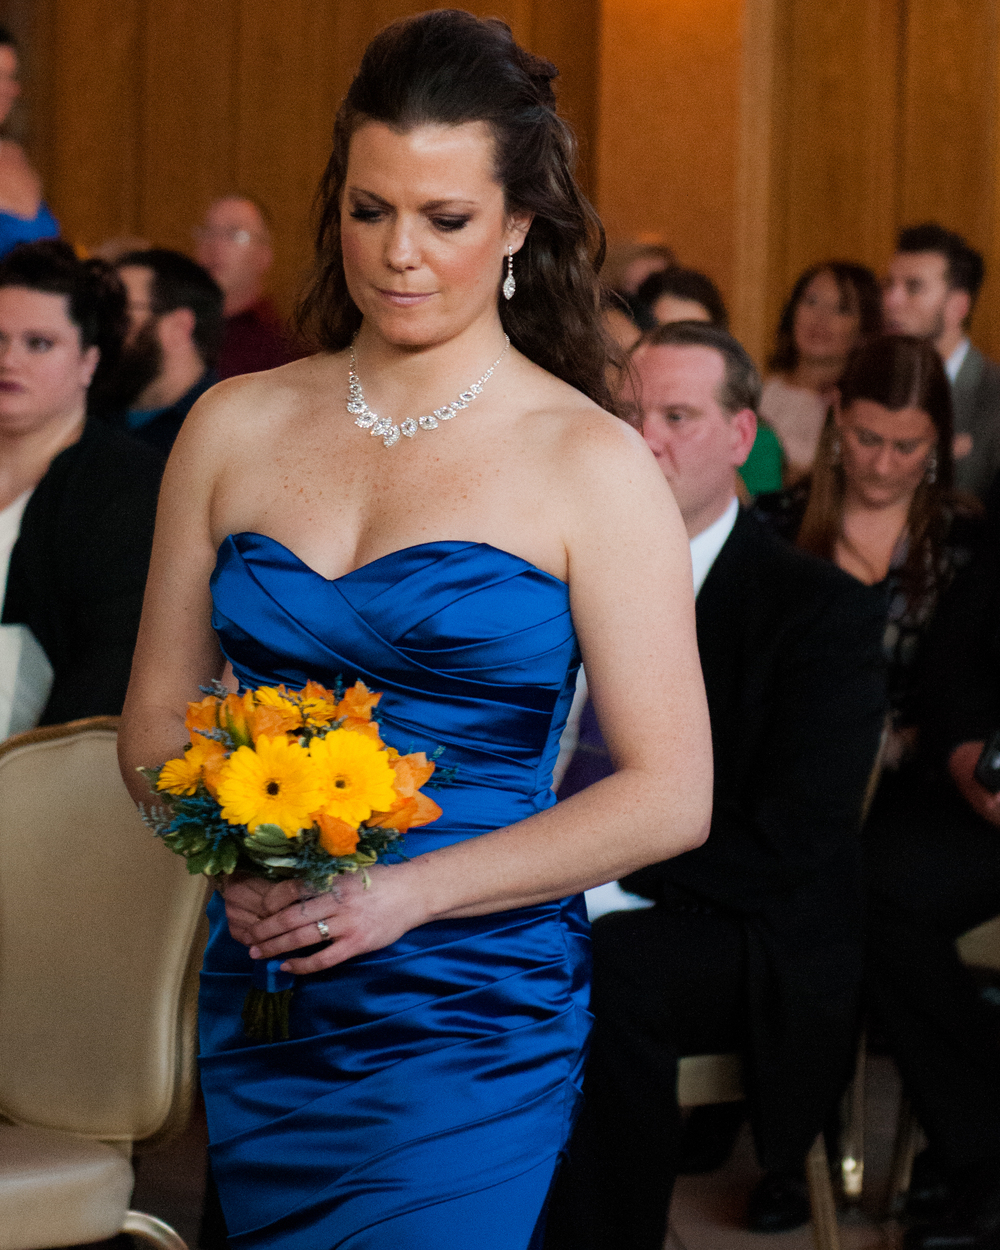 Johnson Wedding (56 of 260).jpg